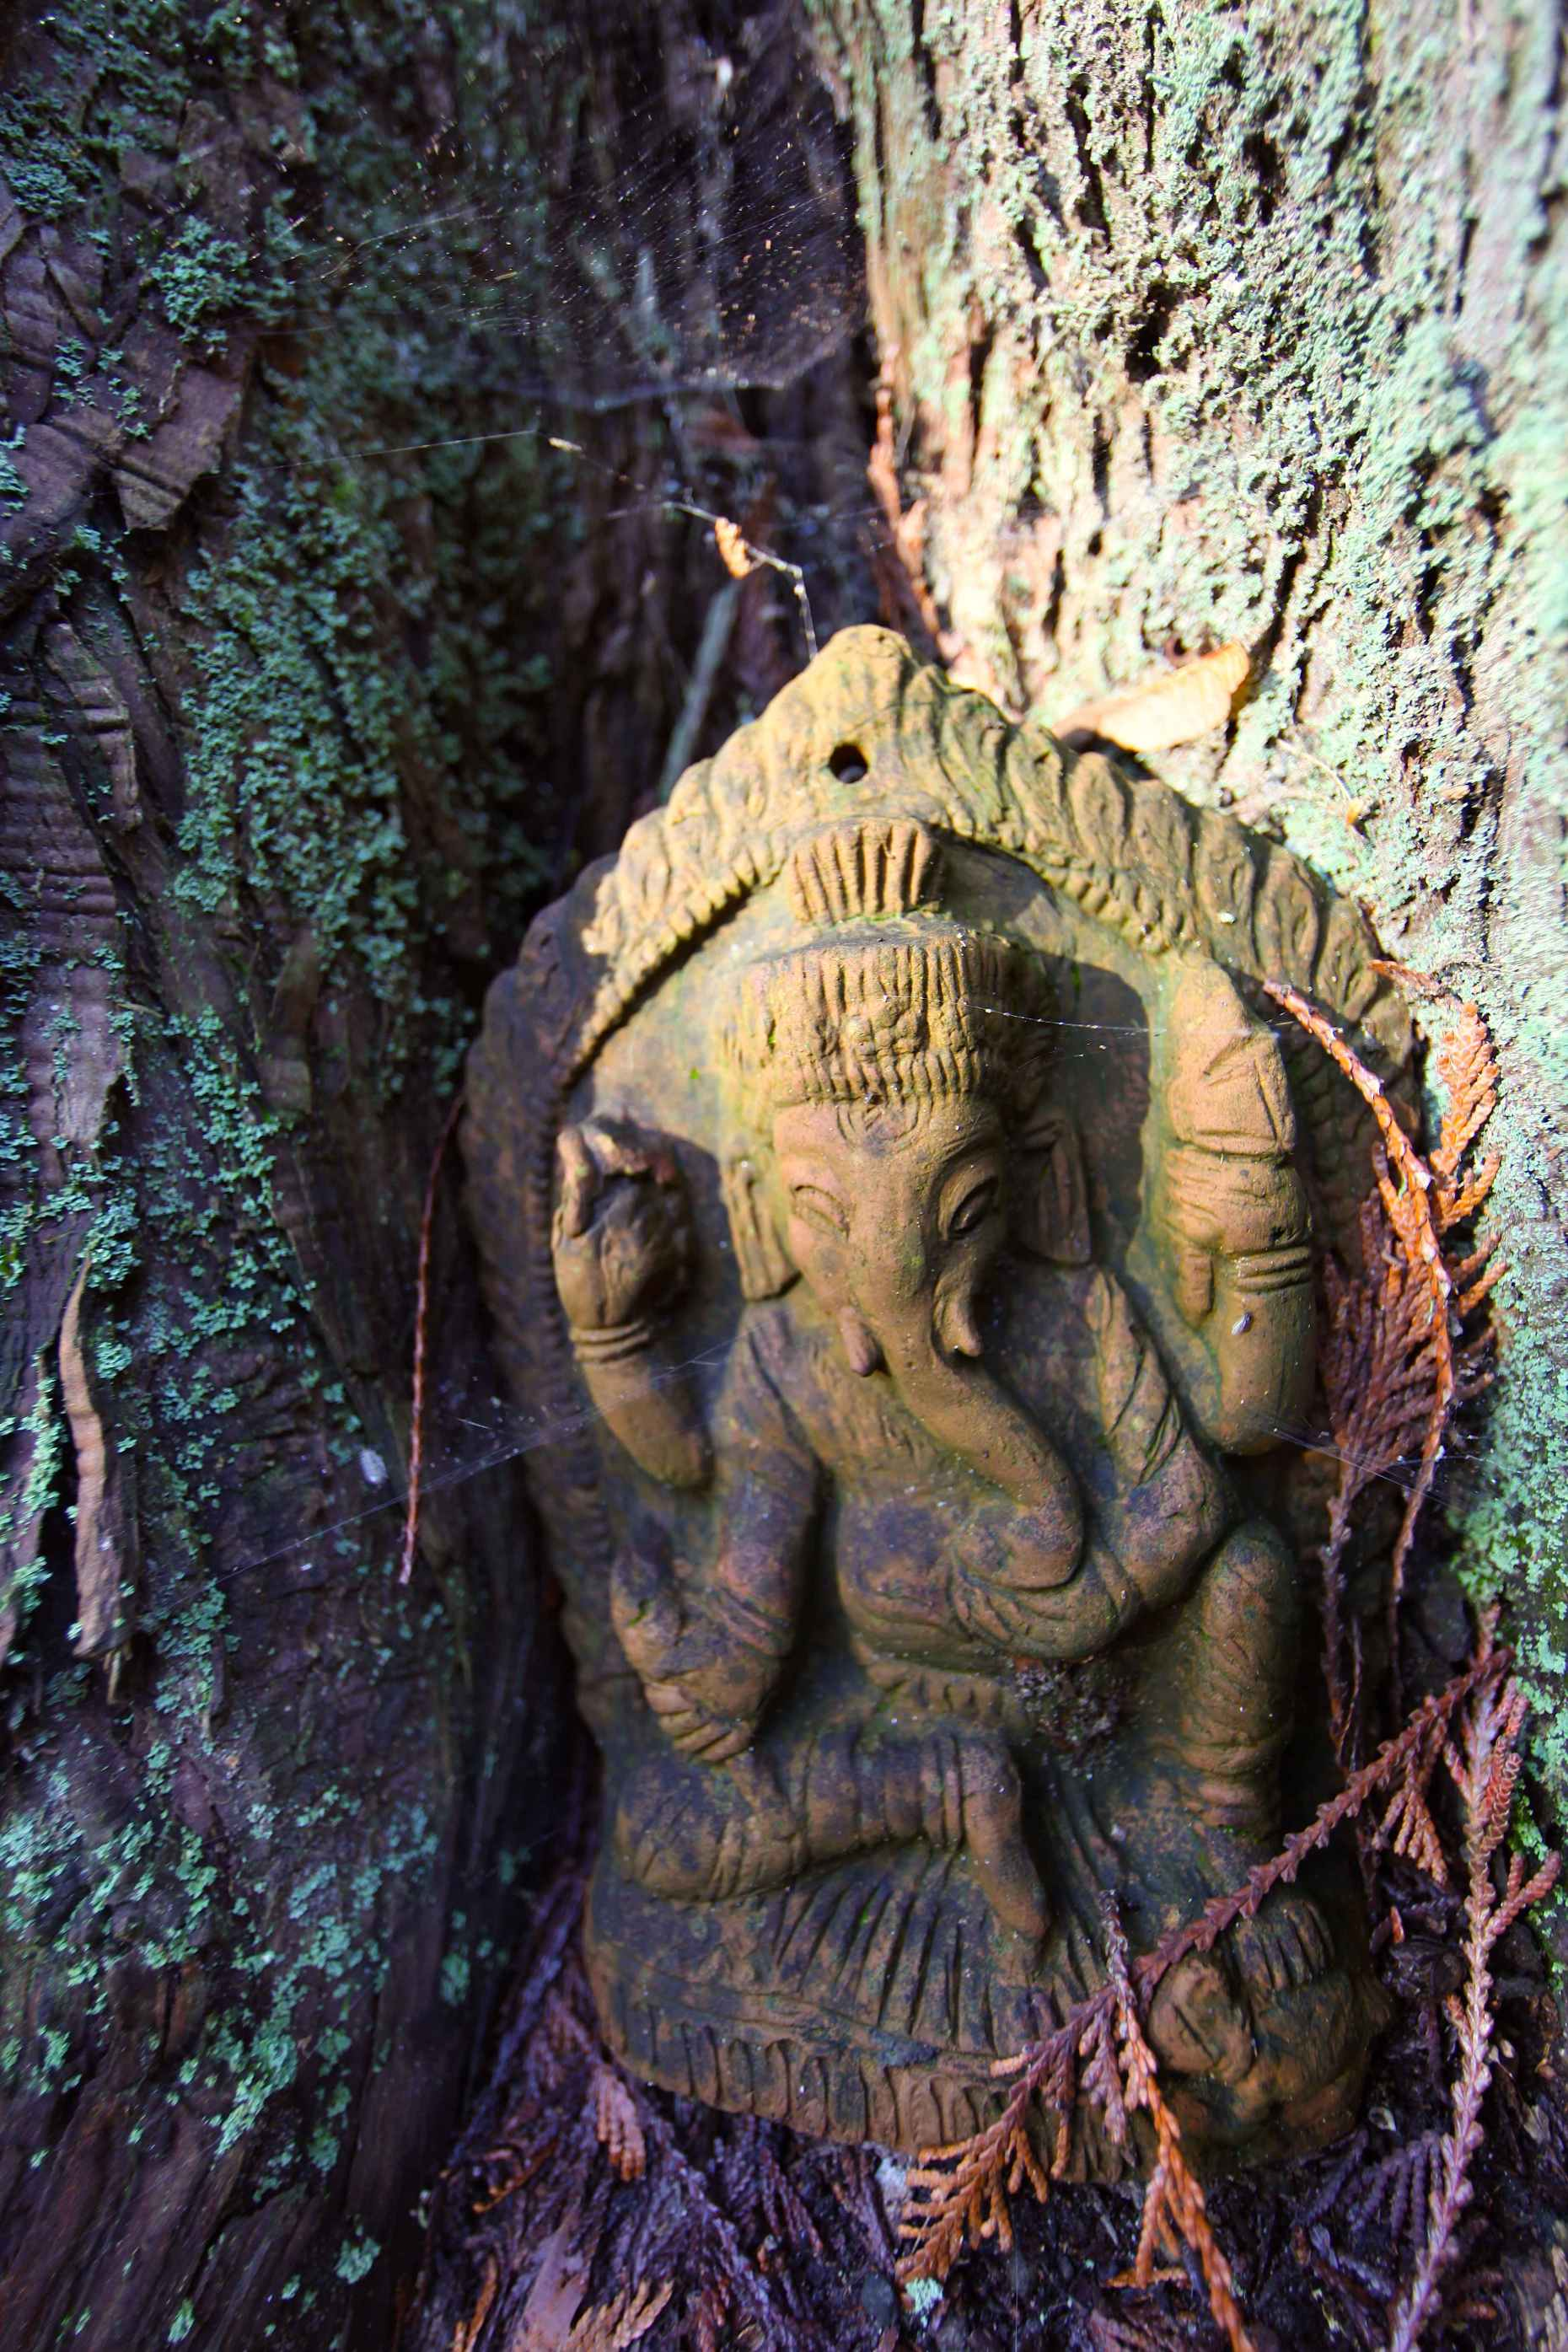 This nook was filled with Ganesh, another elephant. Photo © Liesl Clark